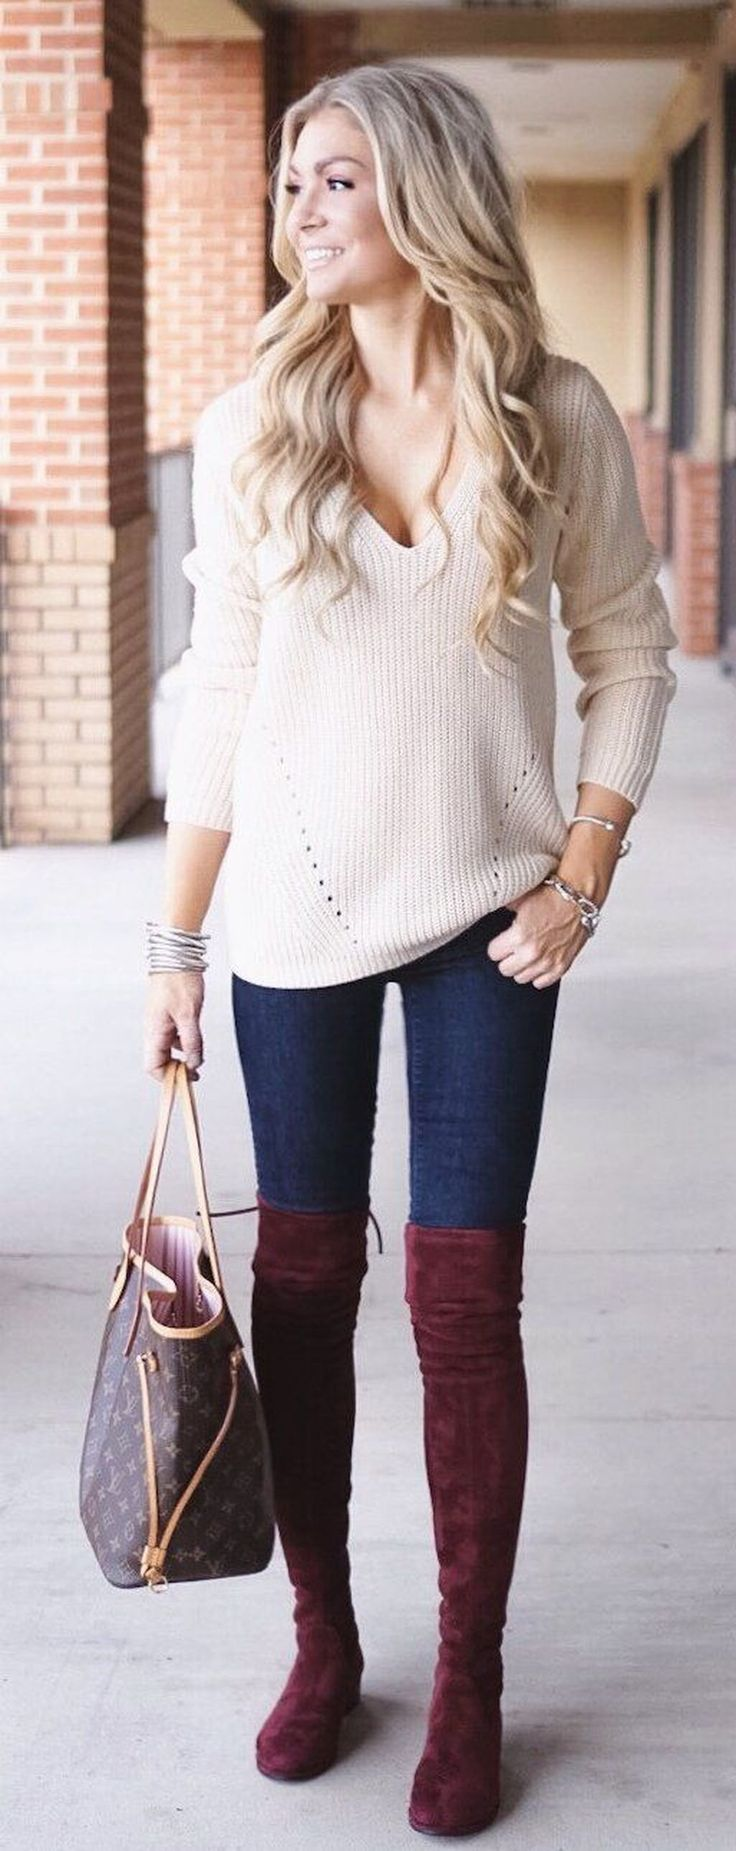 Cool 49 Fabulous Winter White Boots Outfits Ideas for Women. More at https://wear4trend.com/2018/01/13/49-fabulous-winter-white-boots-outfits-ideas-women/